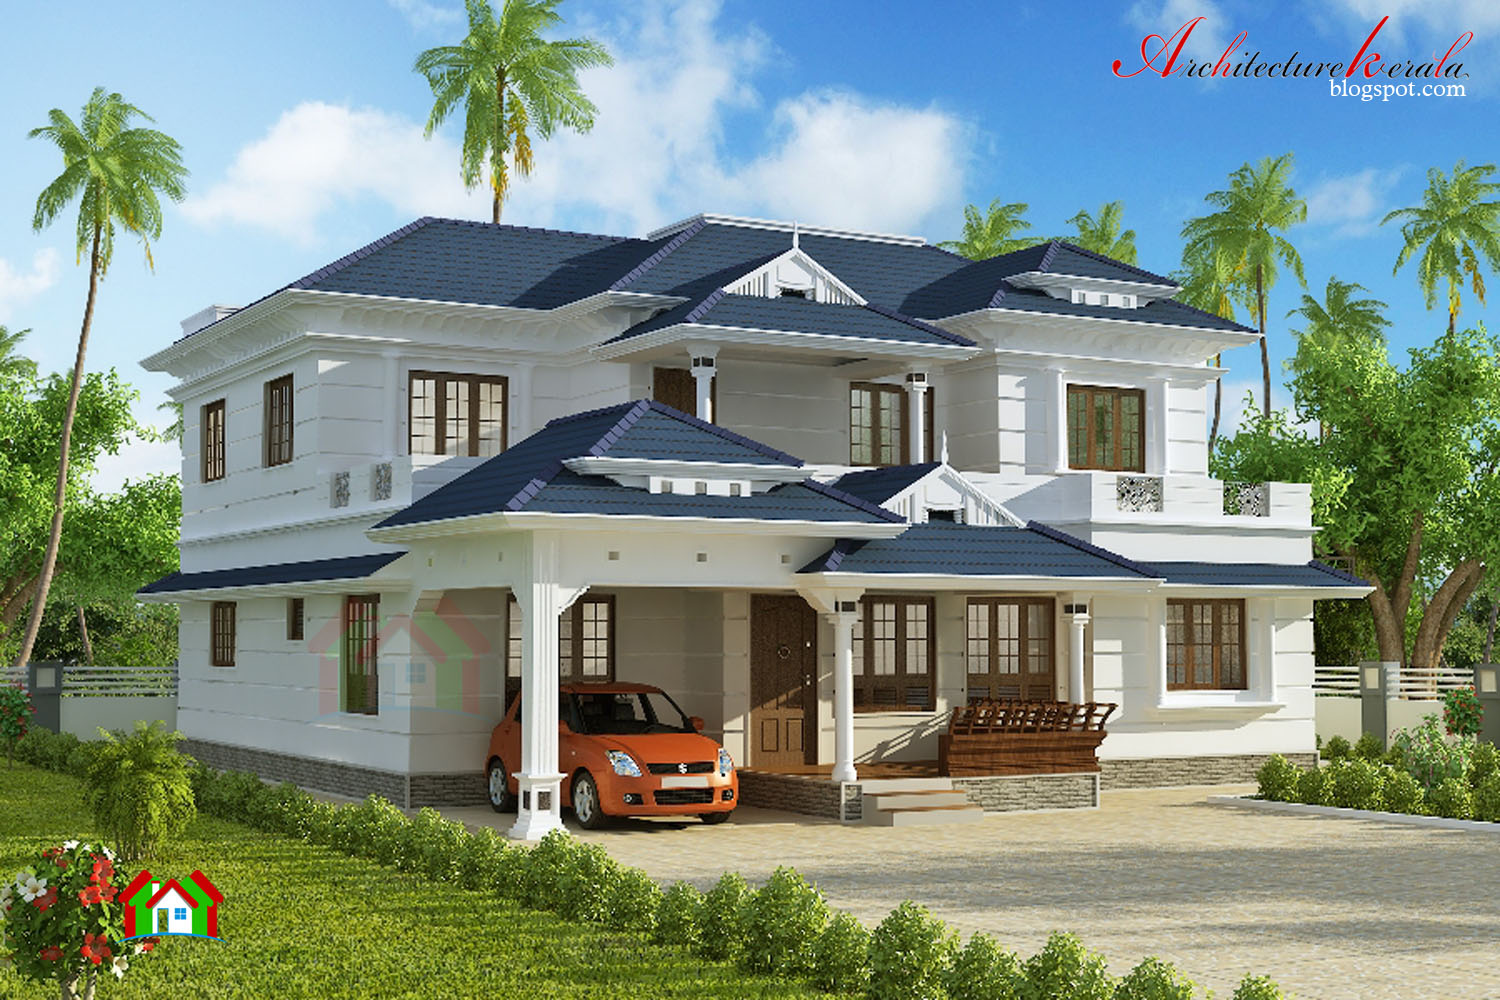 Architecture Kerala 3000 SQUARE FEET HOUSE PLAN